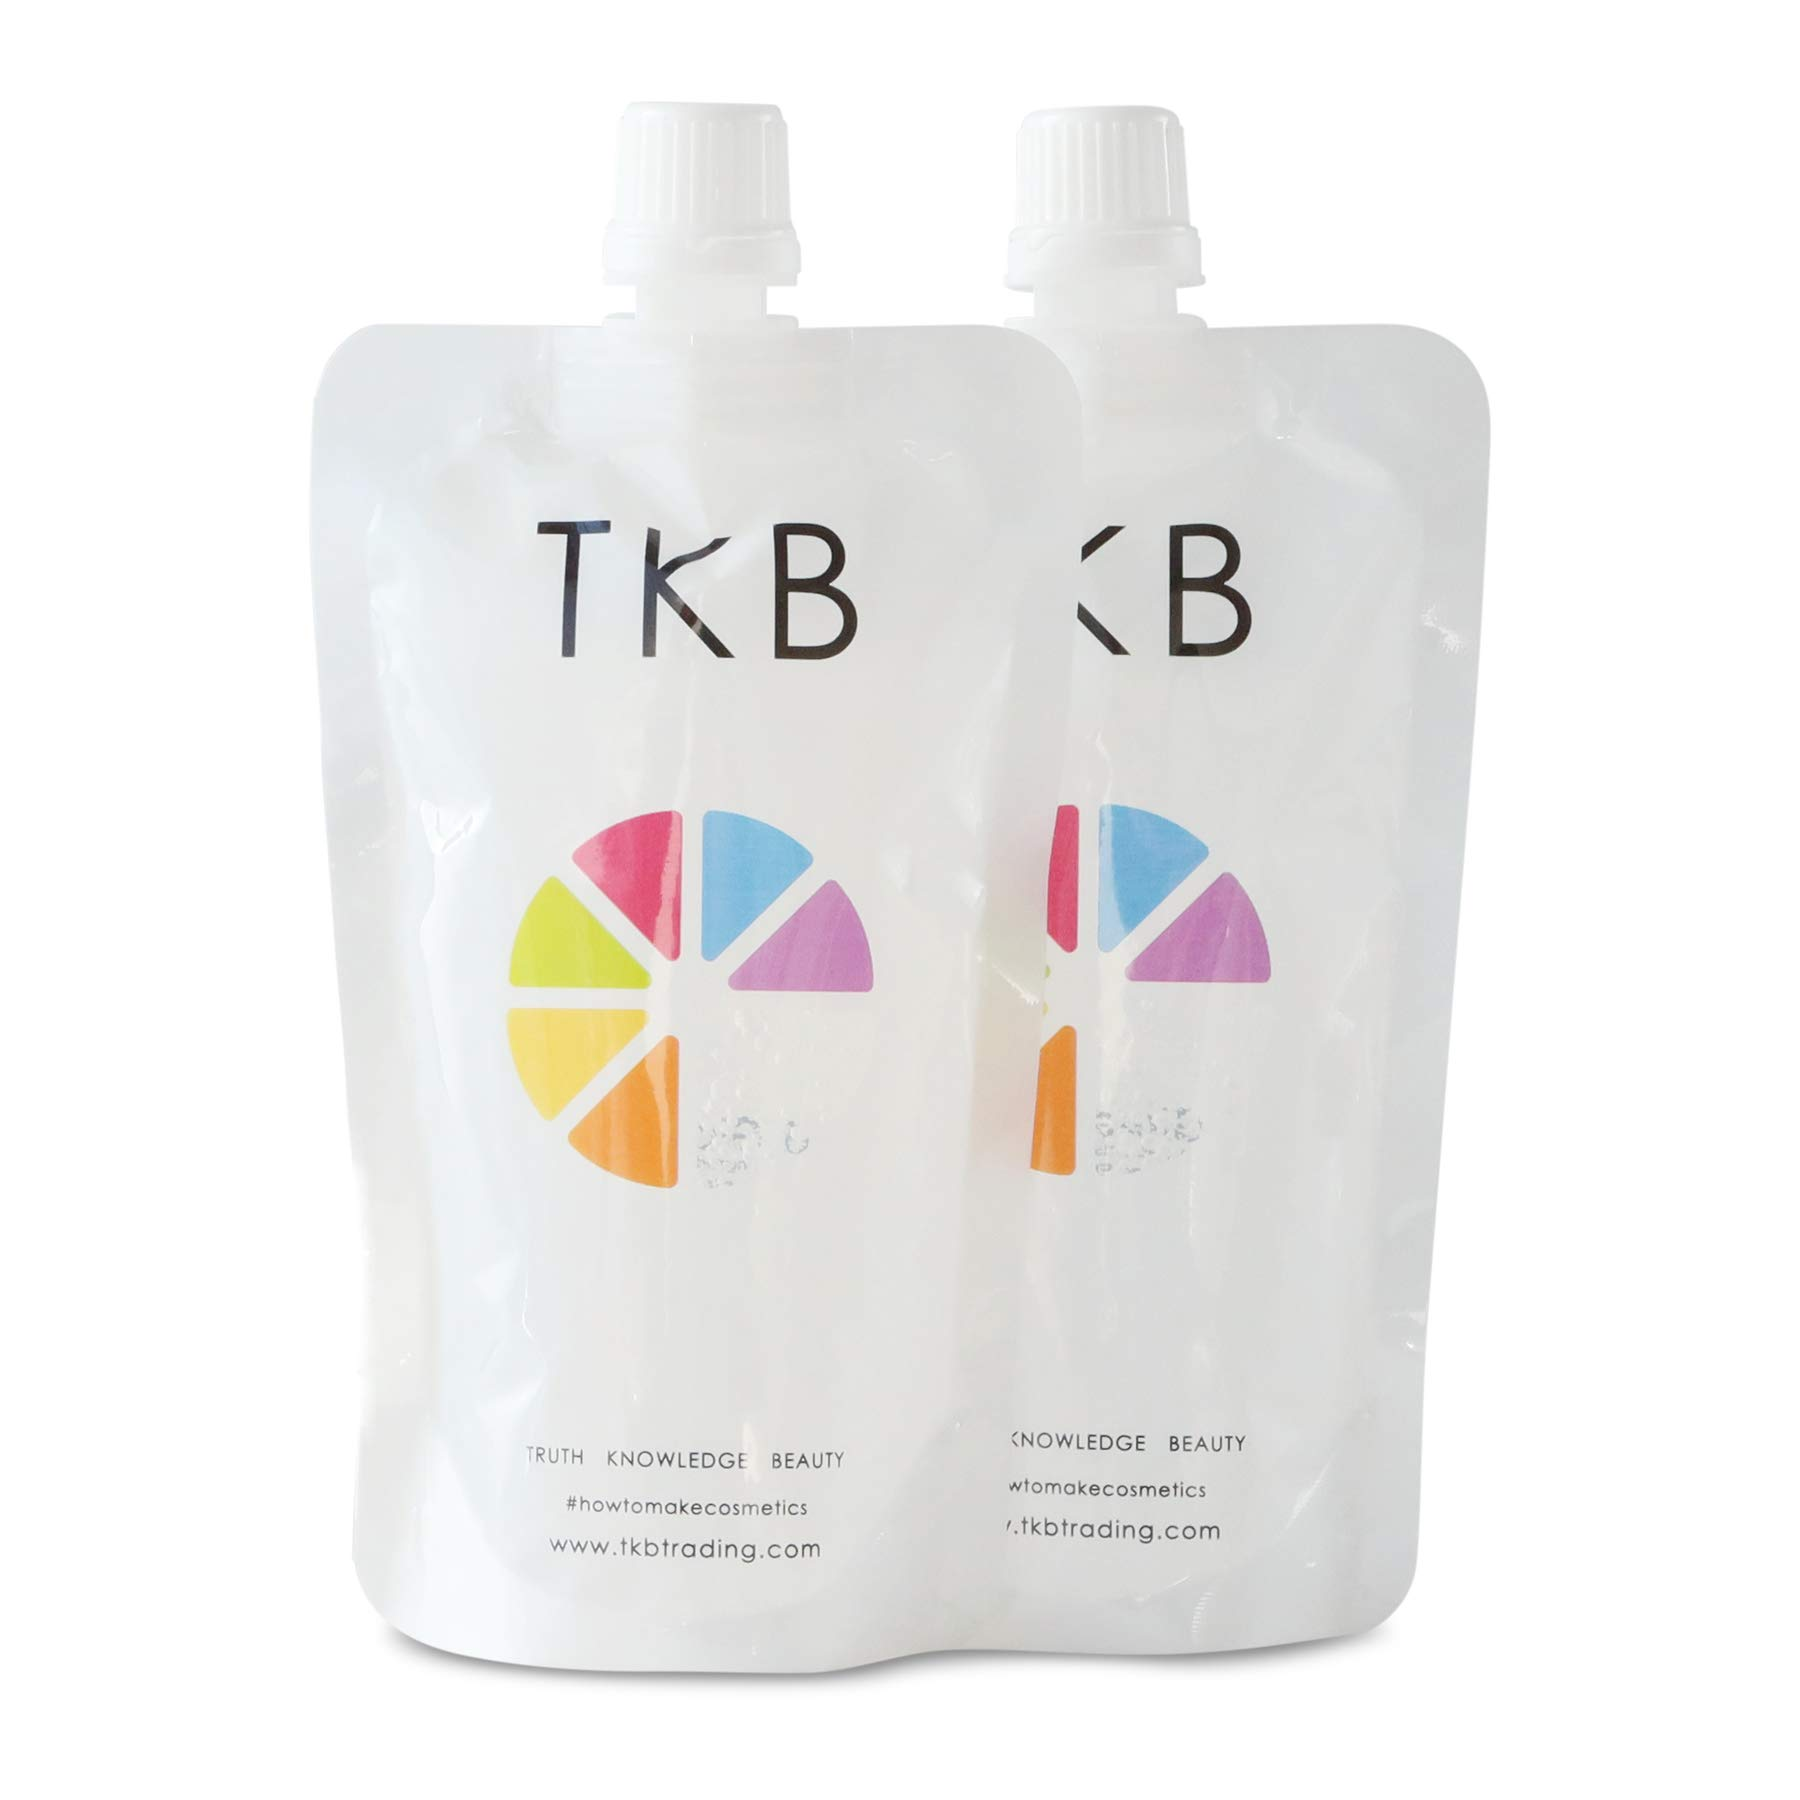 TKB Lip Gloss Base   Clear Versagel Base for DIY Lip Gloss, Made in USA 11 oz (2 of 5.5 oz bags) Mineral-Oil-Free ($1.37/oz)